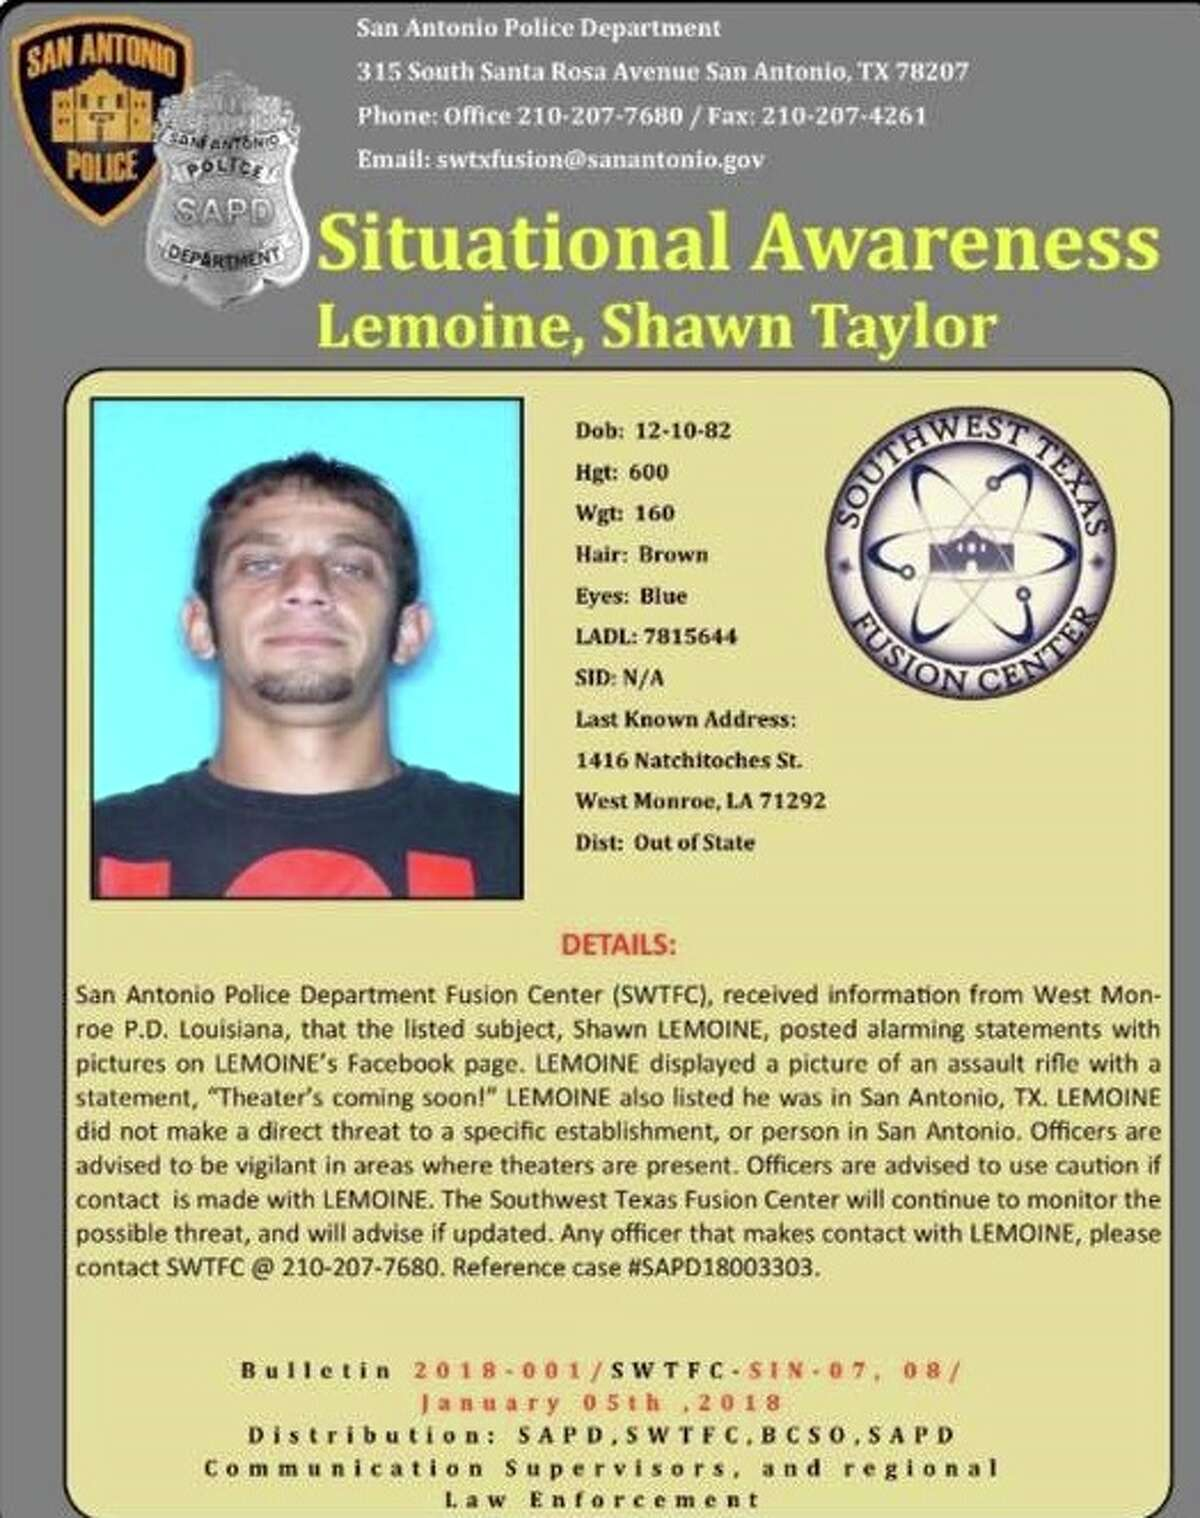 The officer safety bulletin about Shawn Lemoine spread across social media over the weekend. He was arrested Sunday on a burglary warrant out of Louisiana.